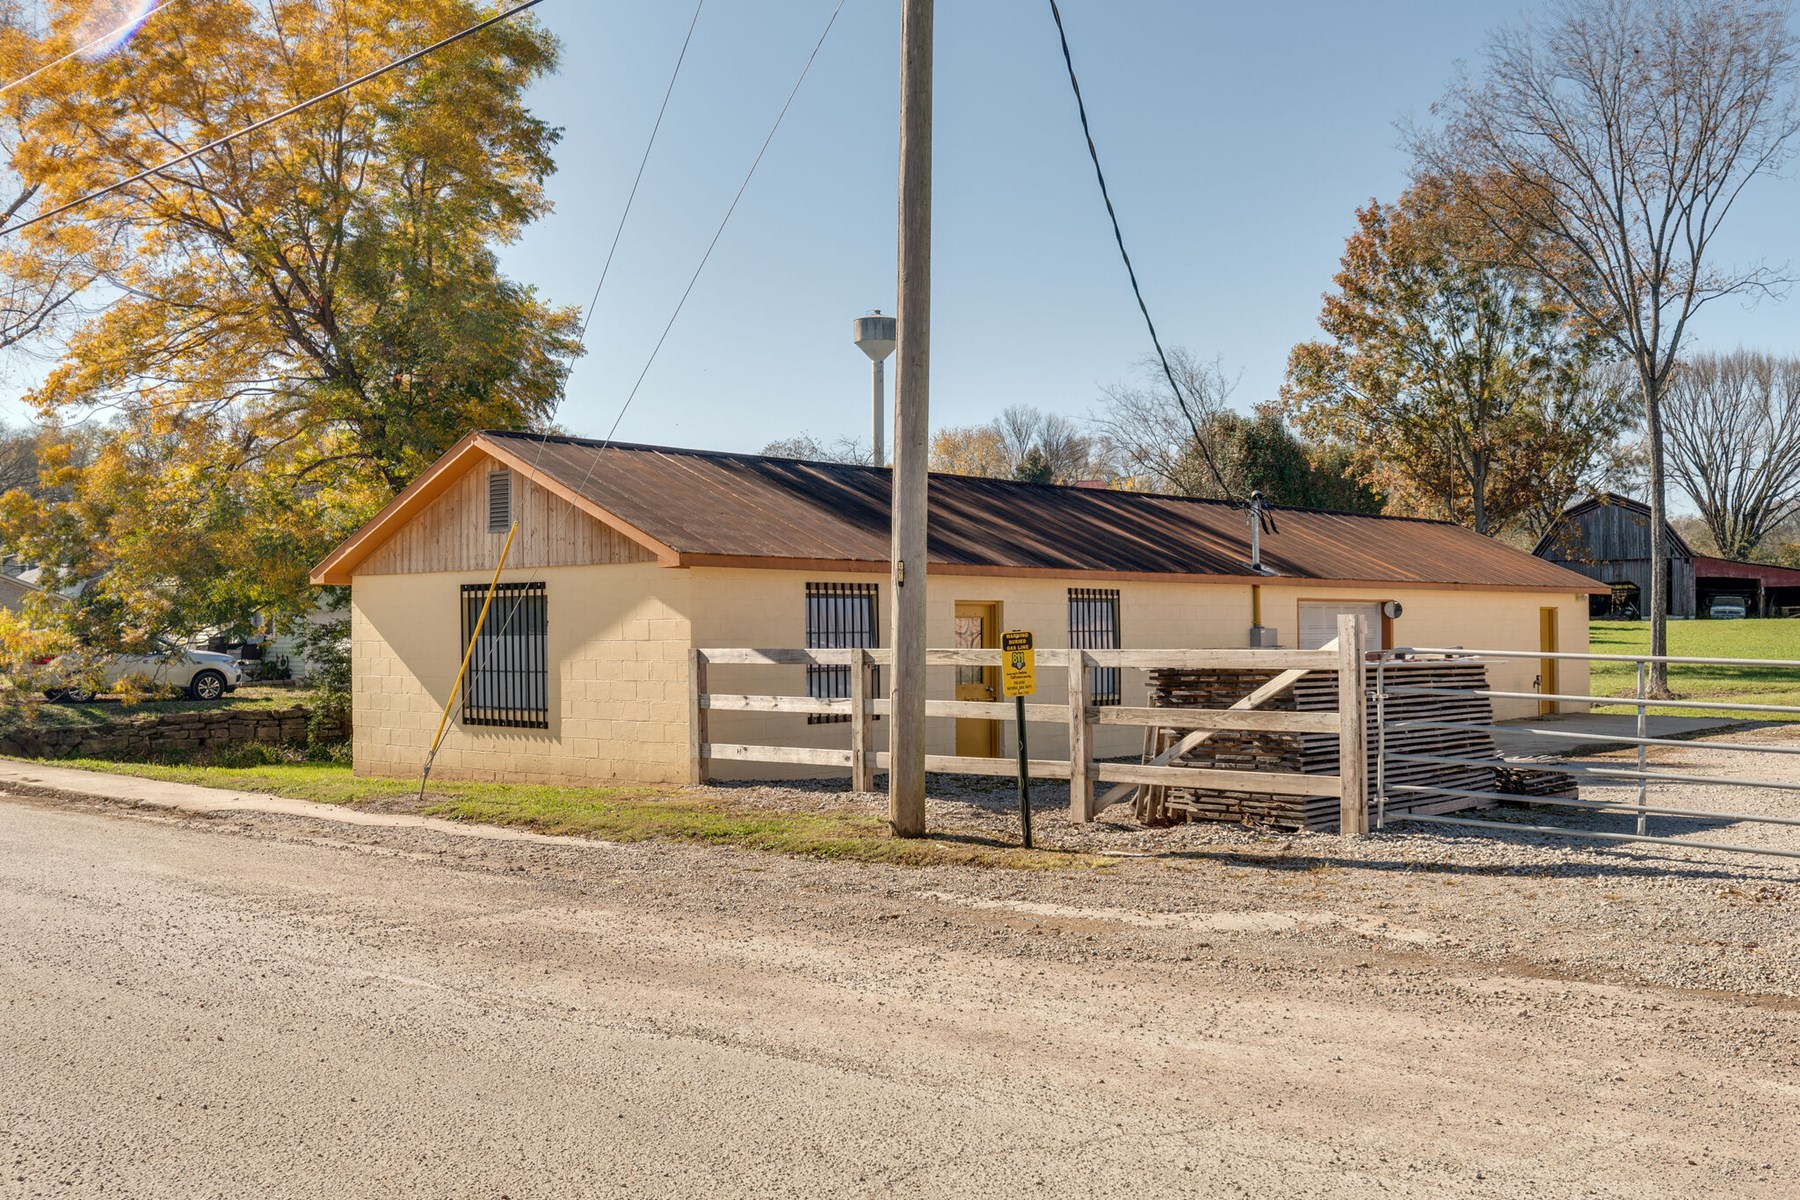 Commercial Building for Sale in Lynnville, Tennessee